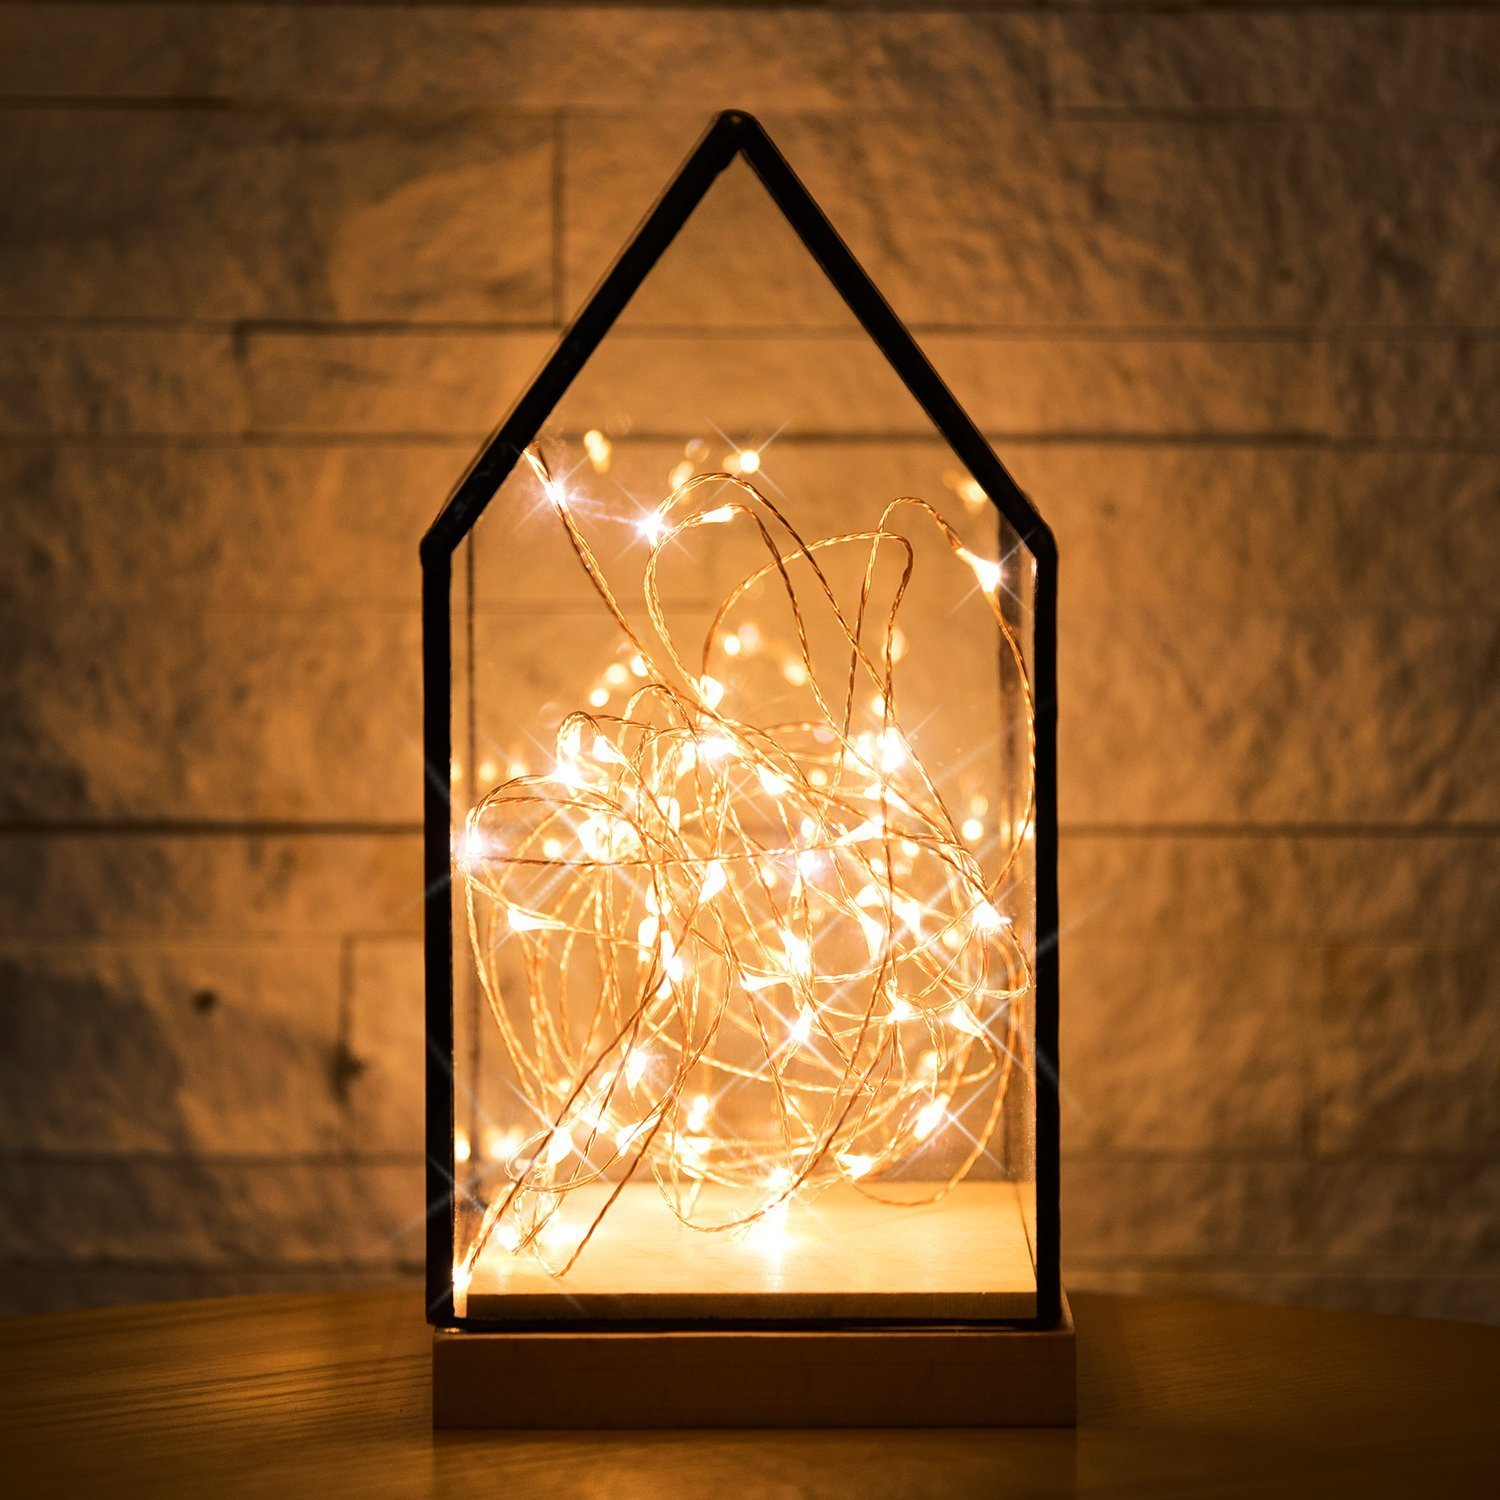 Kohree LED Novelty Christmas String Lights, Micro 30 LEDs Super Bright Warm Whit eBay